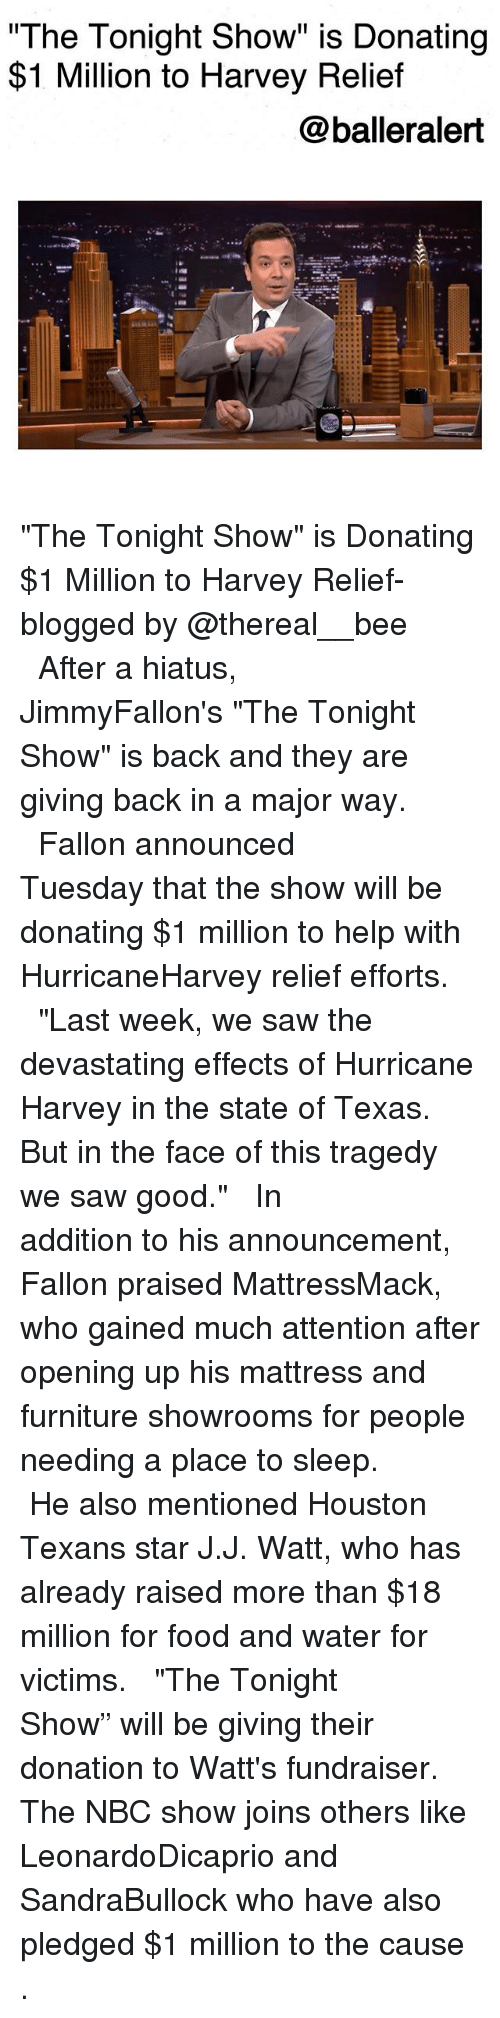 """Sawing: The Tonight Show"""" is Donating  $1 Million to Harvey Relief  @balleralert  s@汽. """"The Tonight Show"""" is Donating $1 Million to Harvey Relief-blogged by @thereal__bee ⠀⠀⠀⠀⠀⠀⠀⠀⠀ ⠀⠀ After a hiatus, JimmyFallon's """"The Tonight Show"""" is back and they are giving back in a major way. ⠀⠀⠀⠀⠀⠀⠀⠀⠀ ⠀⠀ Fallon announced Tuesday that the show will be donating $1 million to help with HurricaneHarvey relief efforts. ⠀⠀⠀⠀⠀⠀⠀⠀⠀ ⠀⠀ """"Last week, we saw the devastating effects of Hurricane Harvey in the state of Texas. But in the face of this tragedy we saw good."""" ⠀⠀⠀⠀⠀⠀⠀⠀⠀ ⠀⠀ In addition to his announcement, Fallon praised MattressMack, who gained much attention after opening up his mattress and furniture showrooms for people needing a place to sleep. ⠀⠀⠀⠀⠀⠀⠀⠀⠀ ⠀⠀ He also mentioned Houston Texans star J.J. Watt, who has already raised more than $18 million for food and water for victims. ⠀⠀⠀⠀⠀⠀⠀⠀⠀ ⠀⠀ """"The Tonight Show"""" will be giving their donation to Watt's fundraiser. The NBC show joins others like LeonardoDicaprio and SandraBullock who have also pledged $1 million to the cause ."""